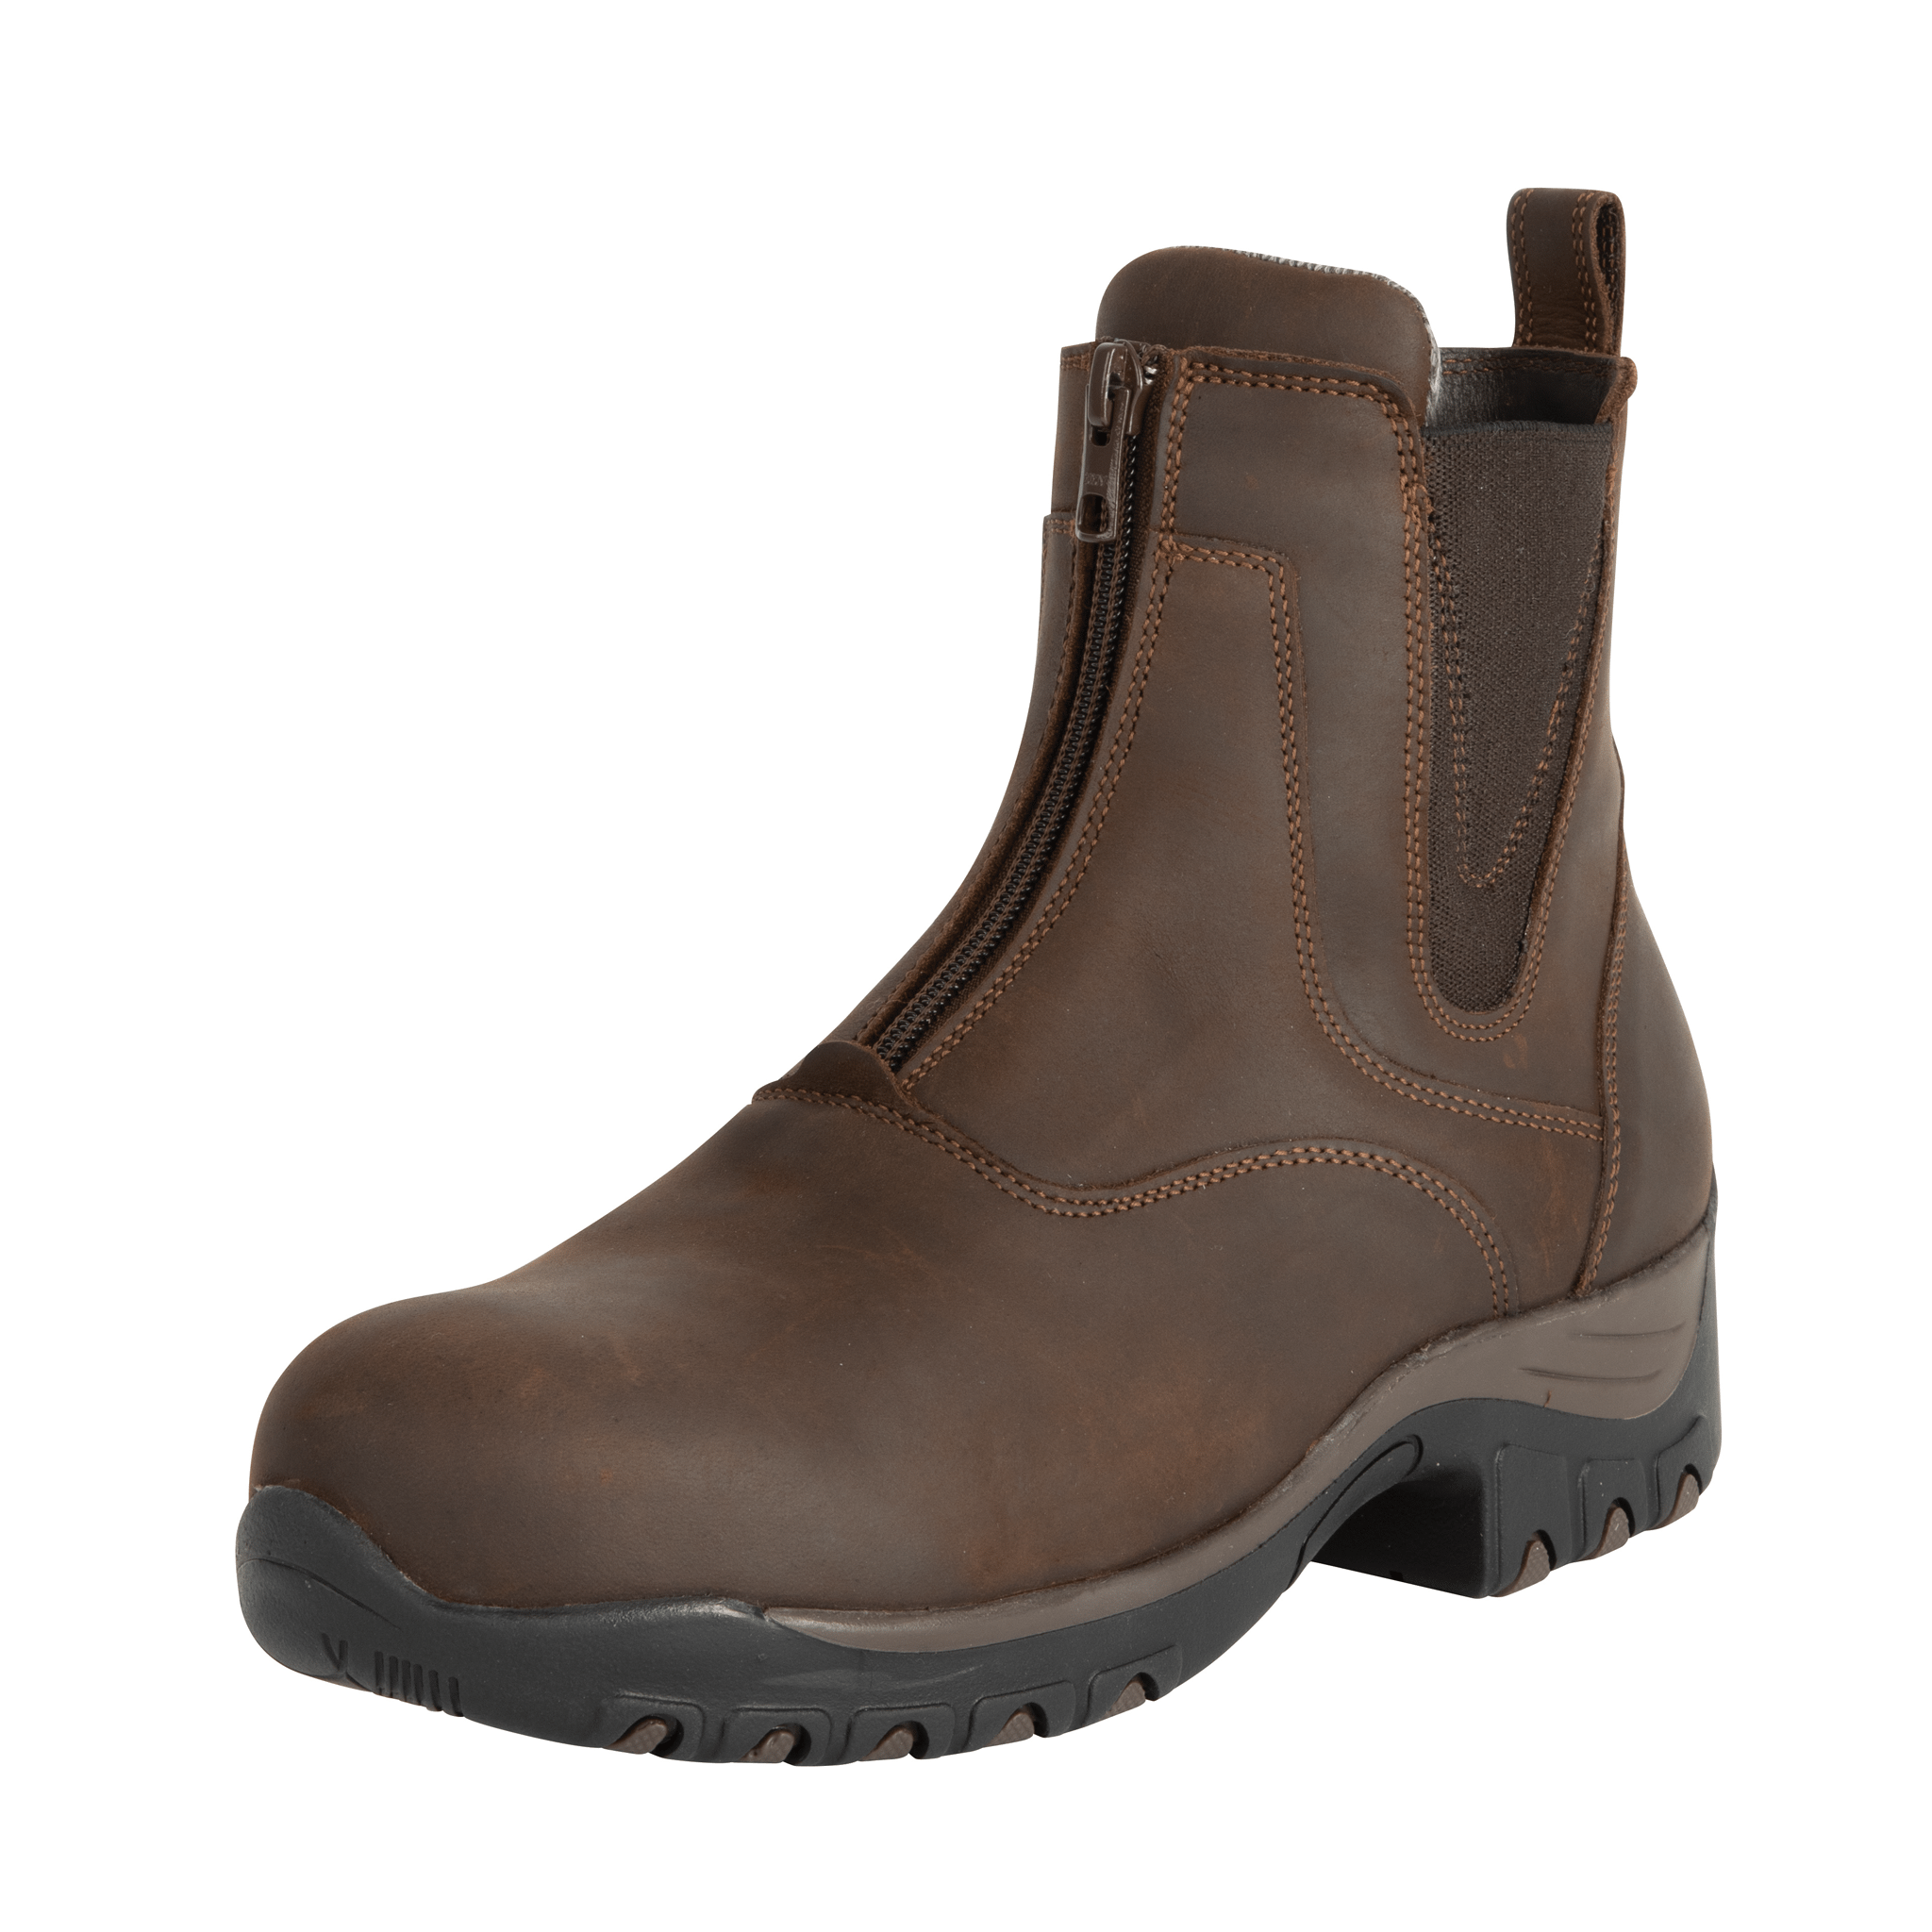 Fonte Verde Luso Jodhpur Boot WF0105 chocolate bown front